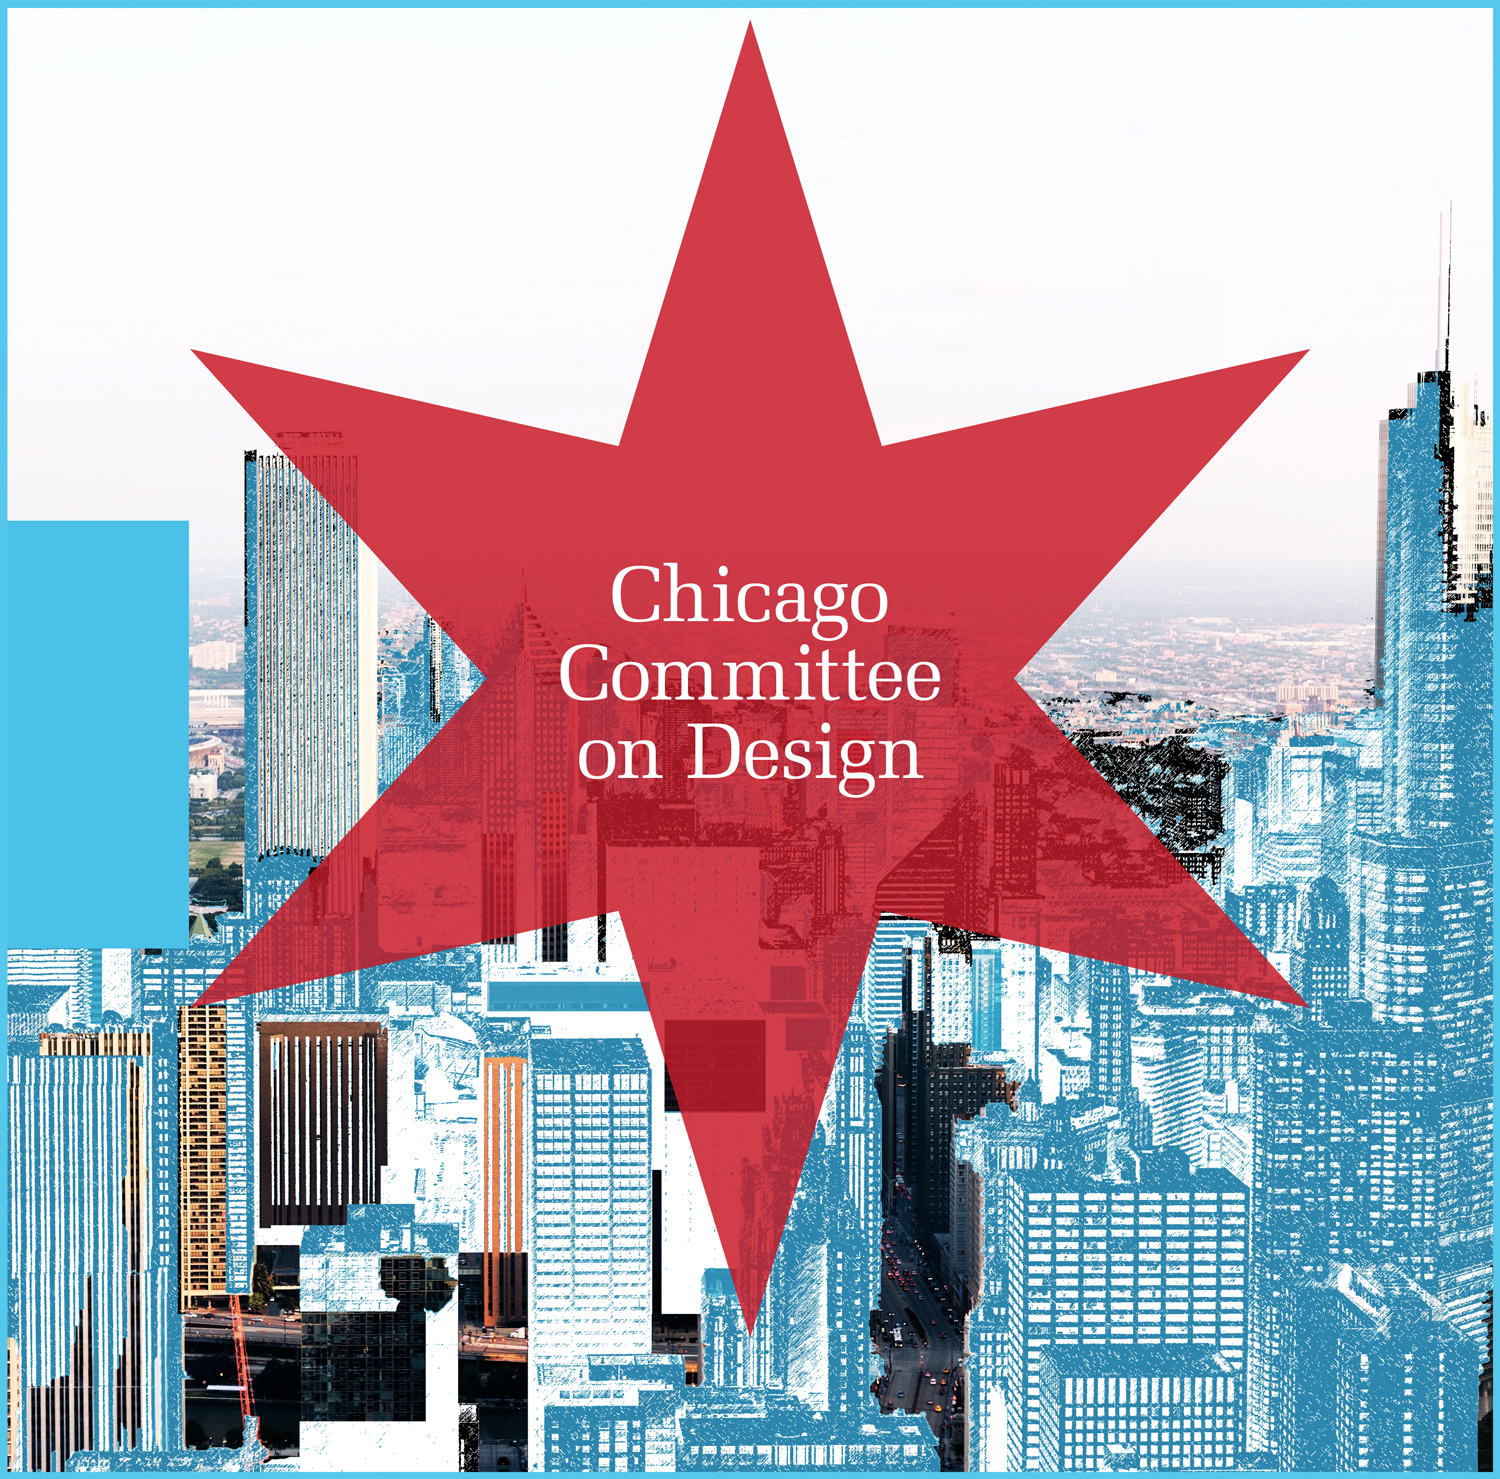 Illustration of Chicago skyline with red star